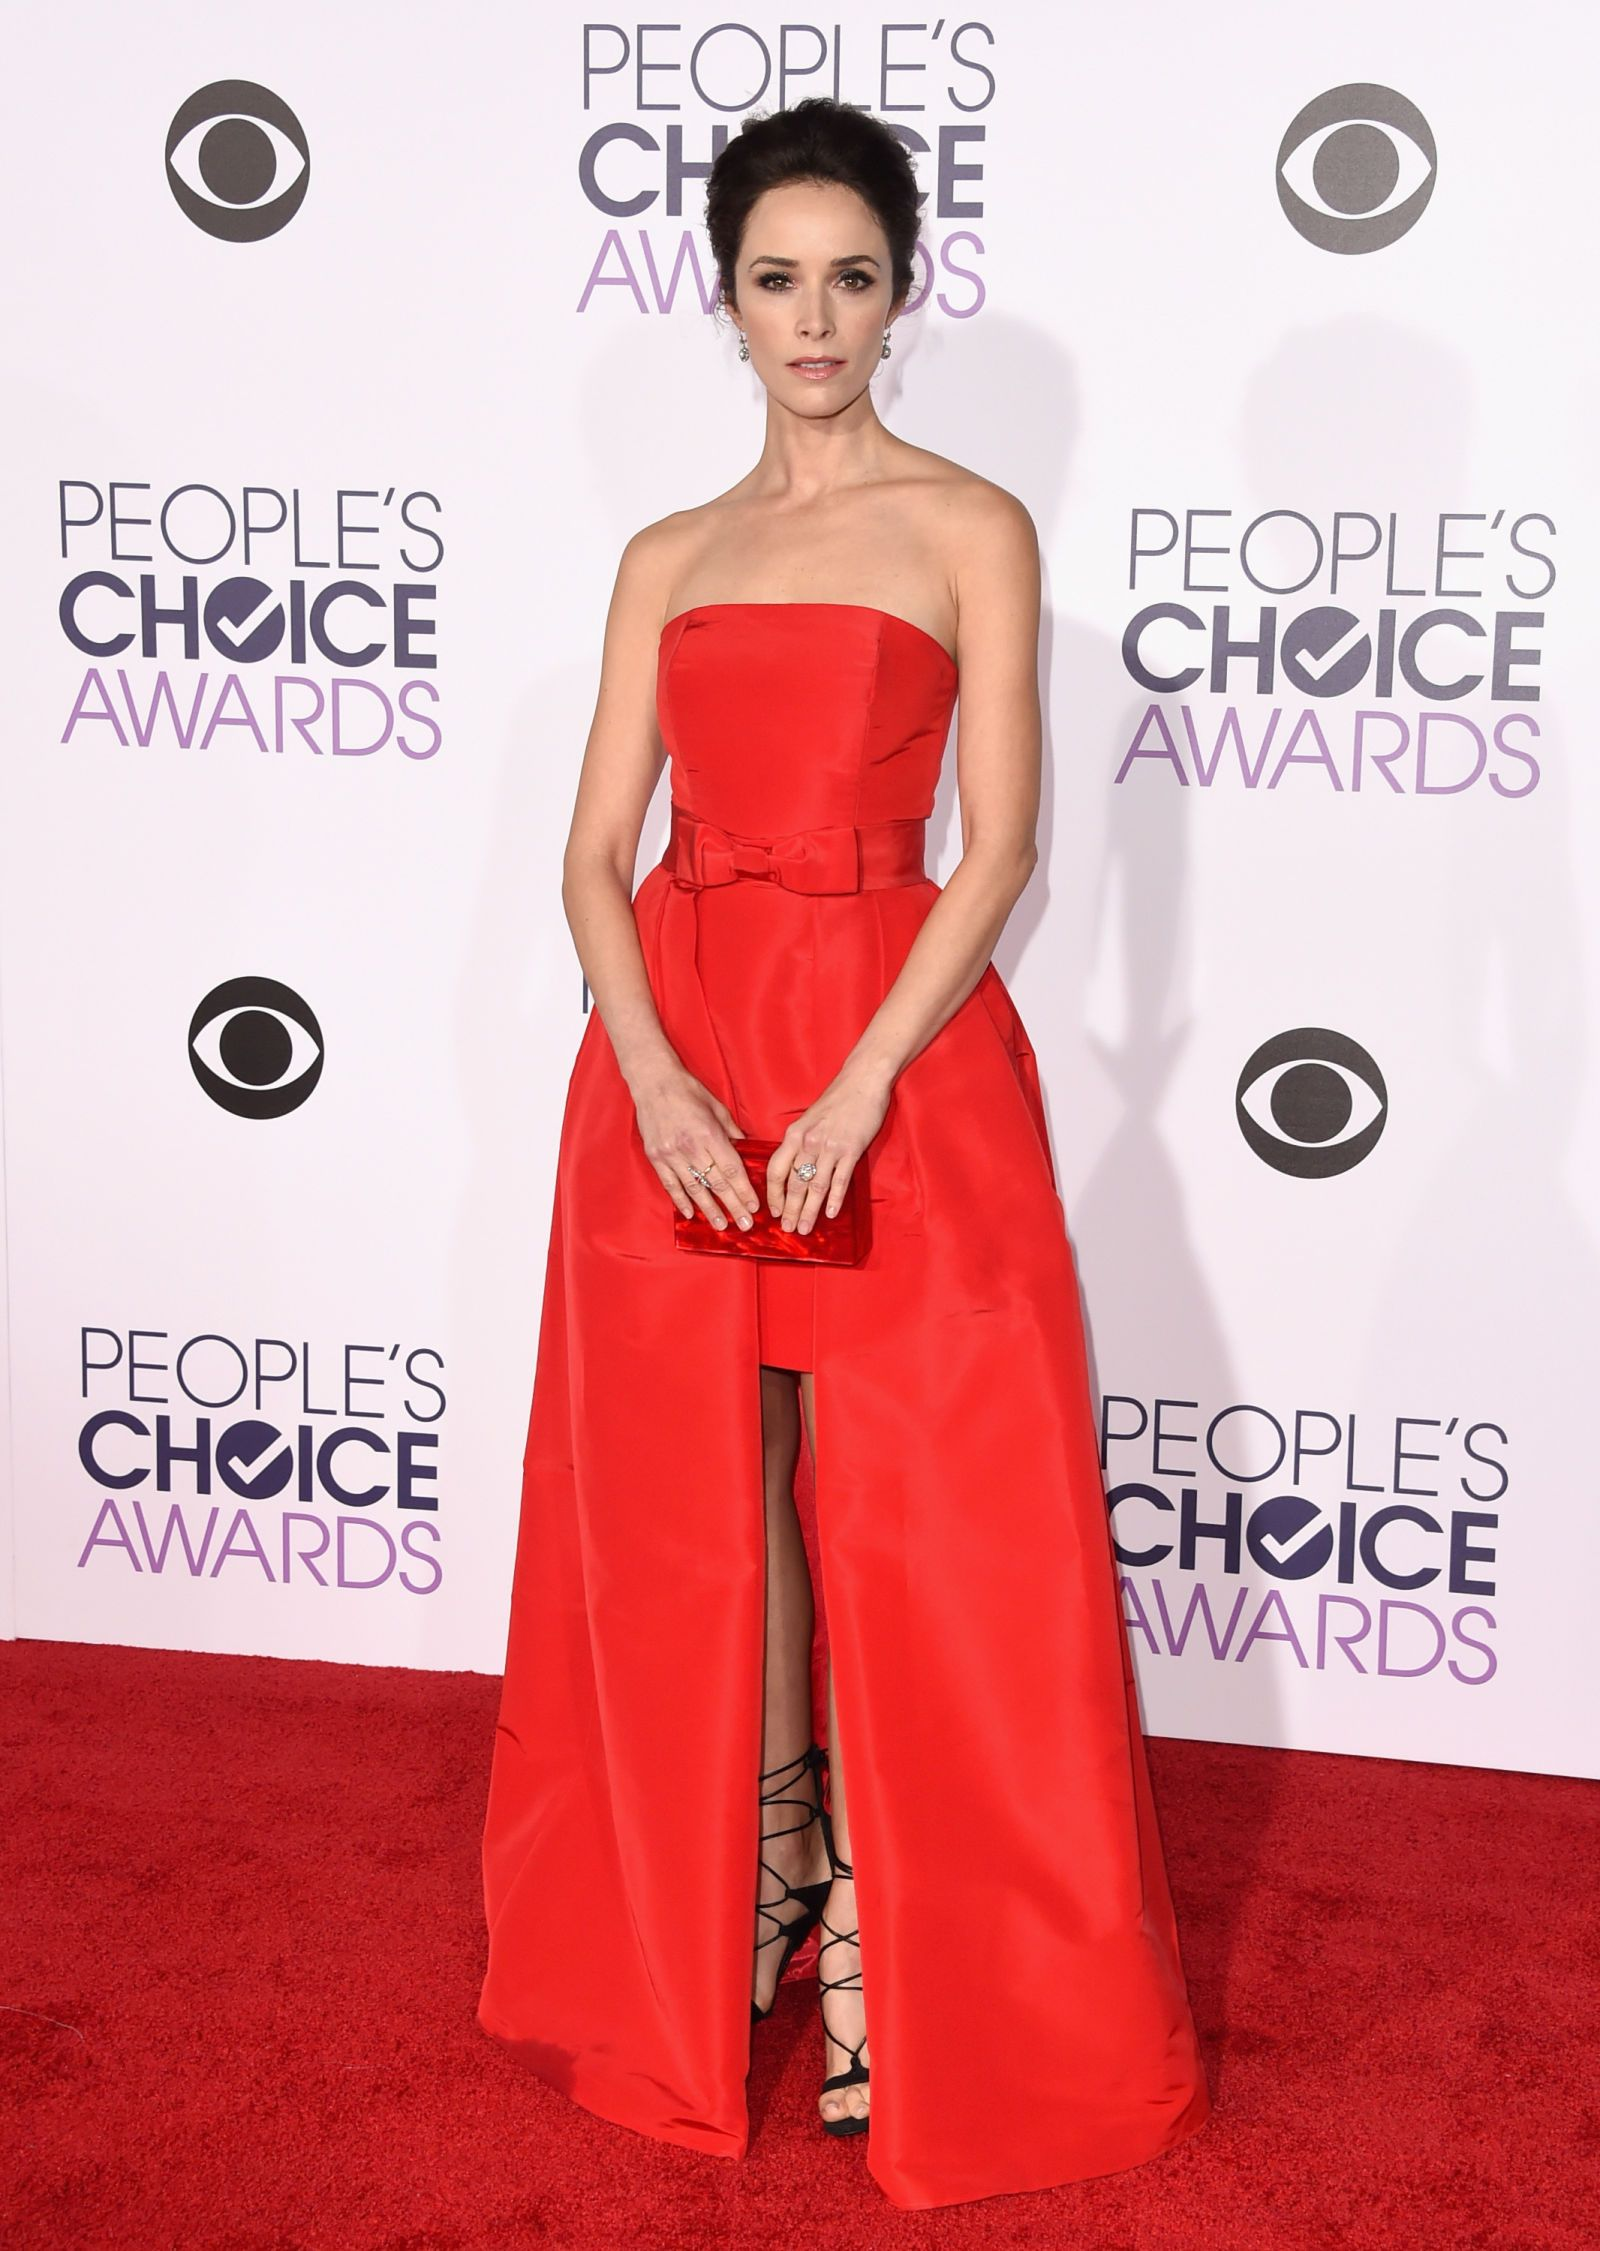 Best Dressed at the 2016 People's Choice Awards  - ELLE.com